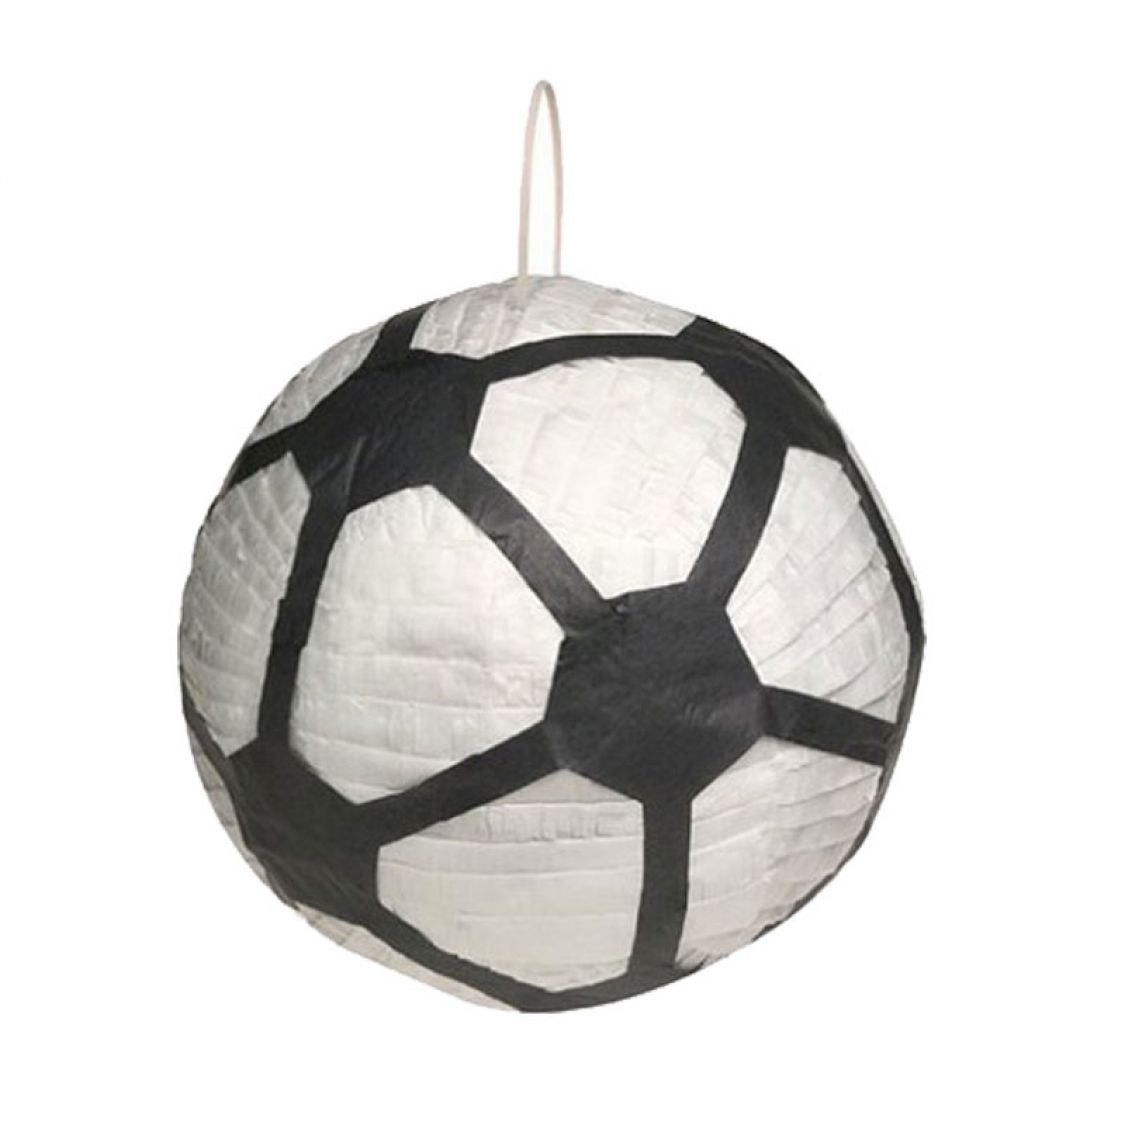 pinata ballon de foot. Black Bedroom Furniture Sets. Home Design Ideas